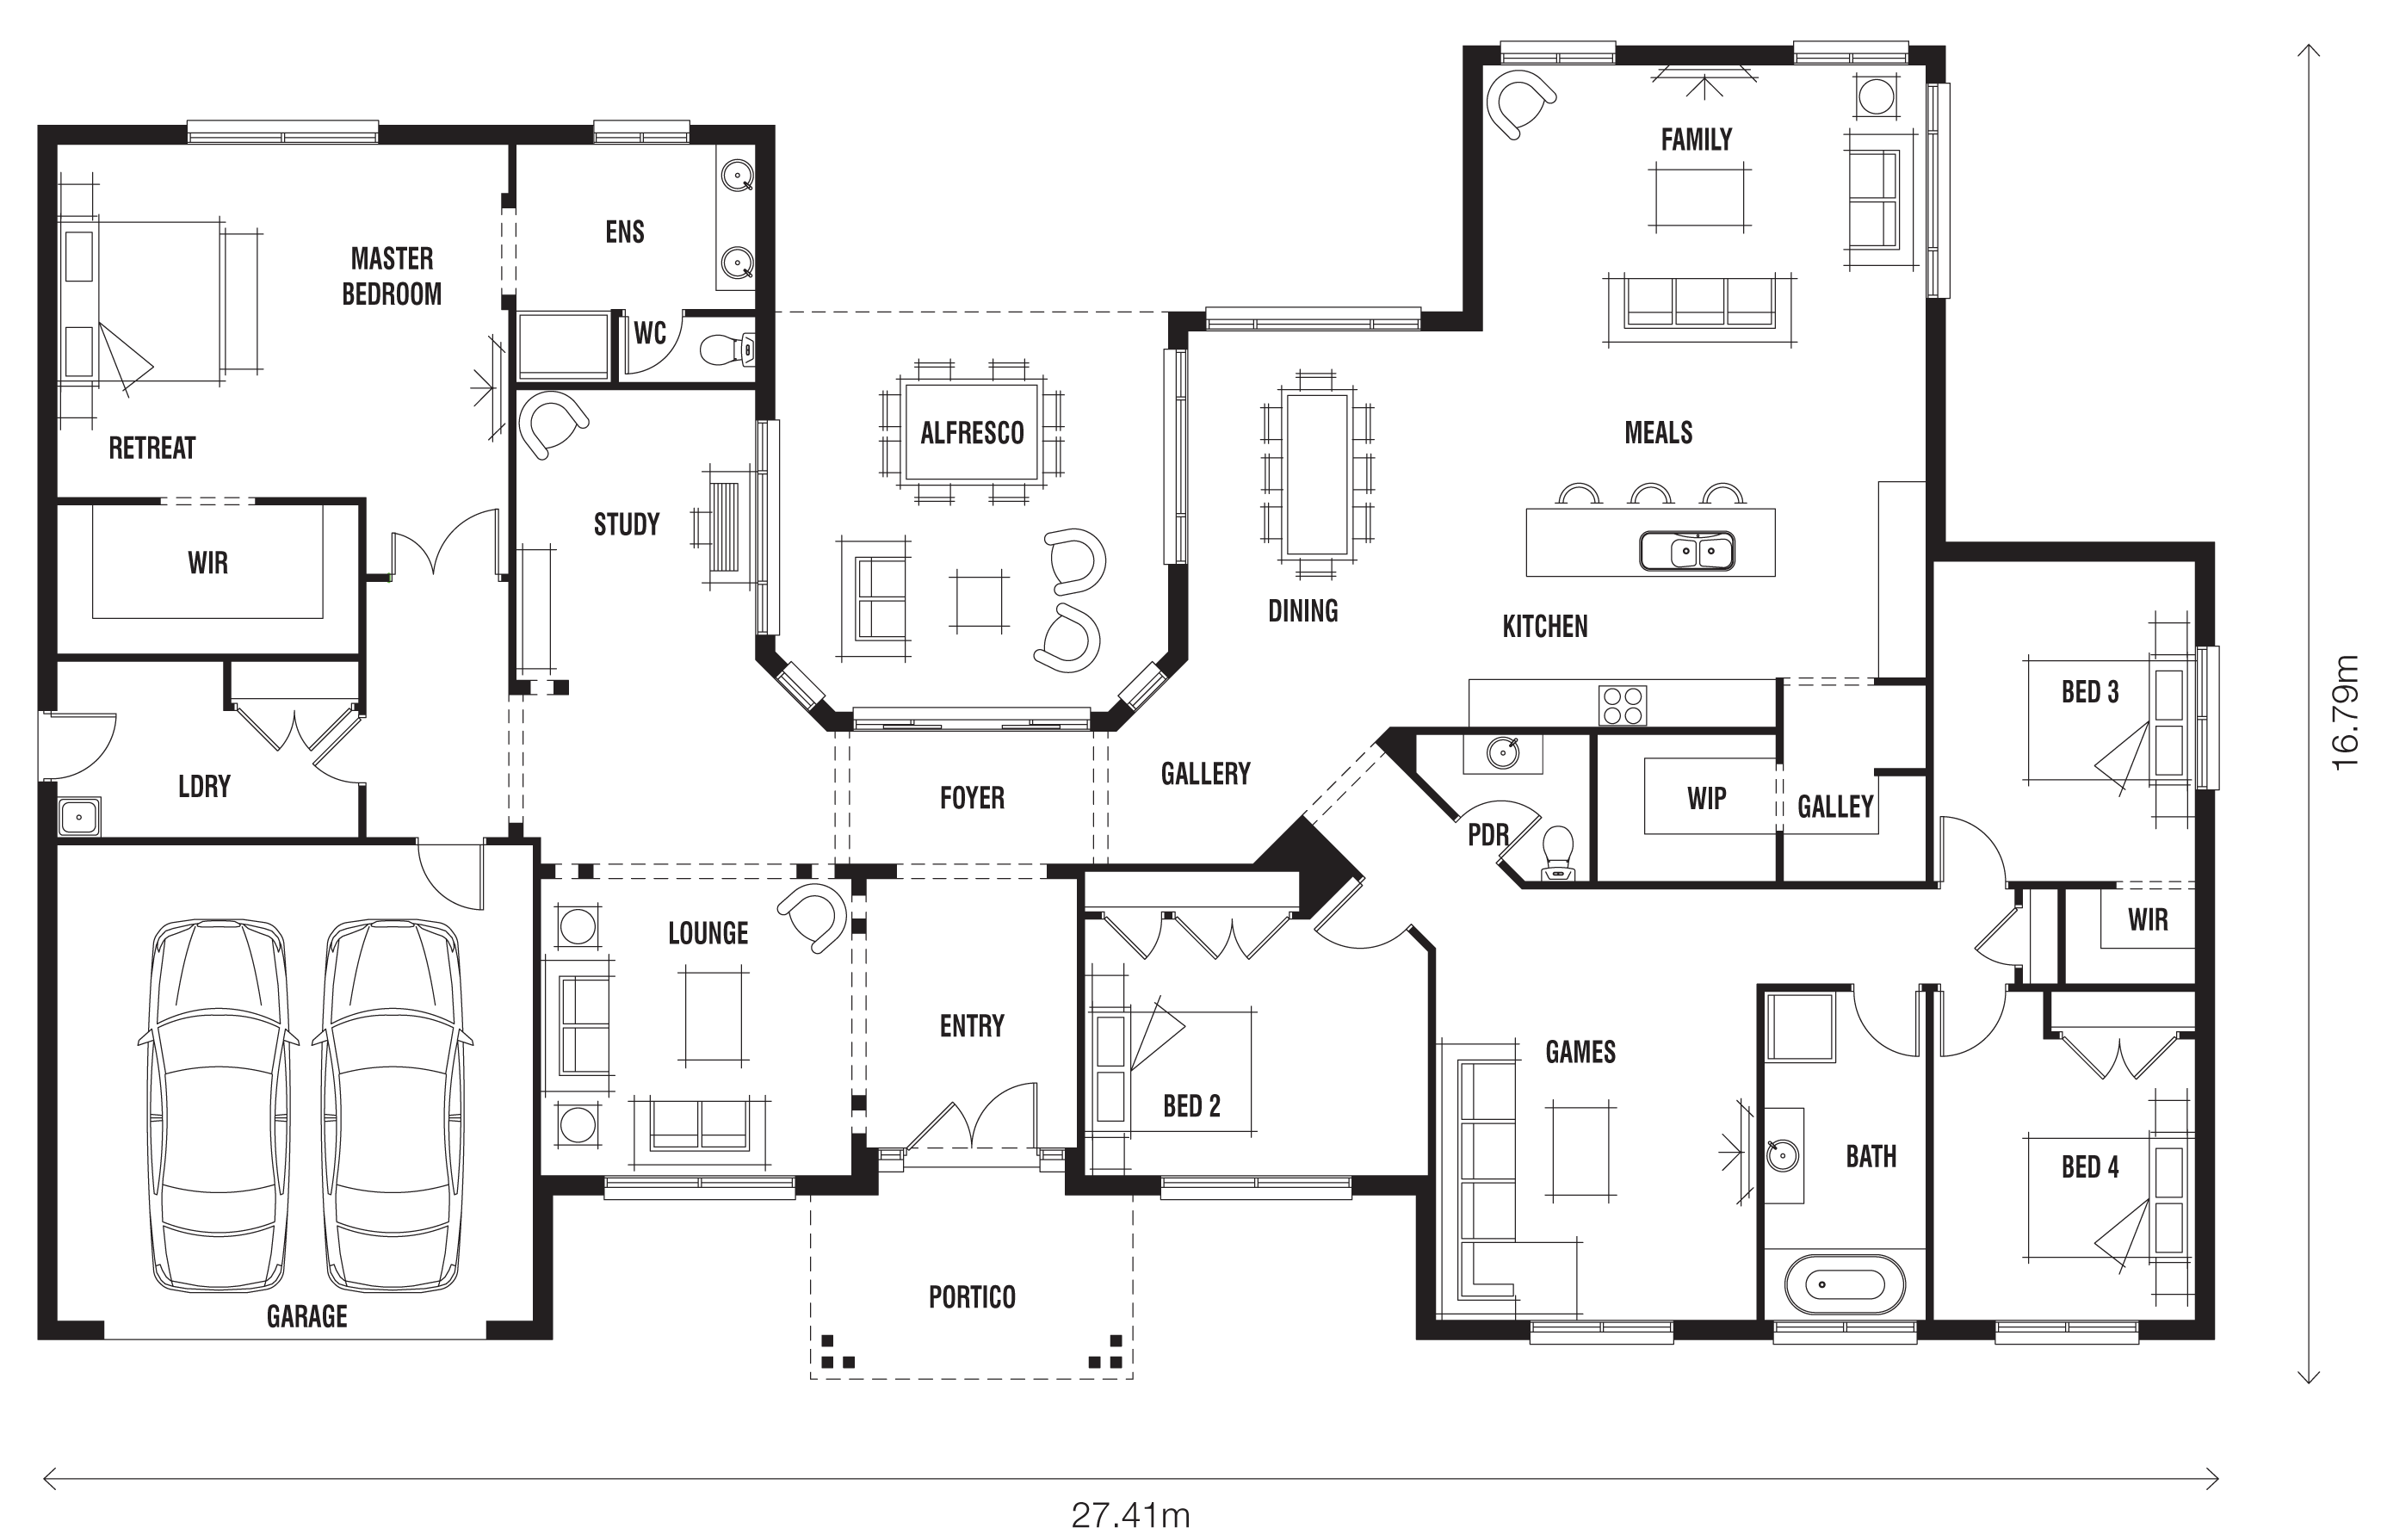 images about House Plans on Pinterest   House plans  Floor       images about House Plans on Pinterest   House plans  Floor Plans and Coastal House Plans